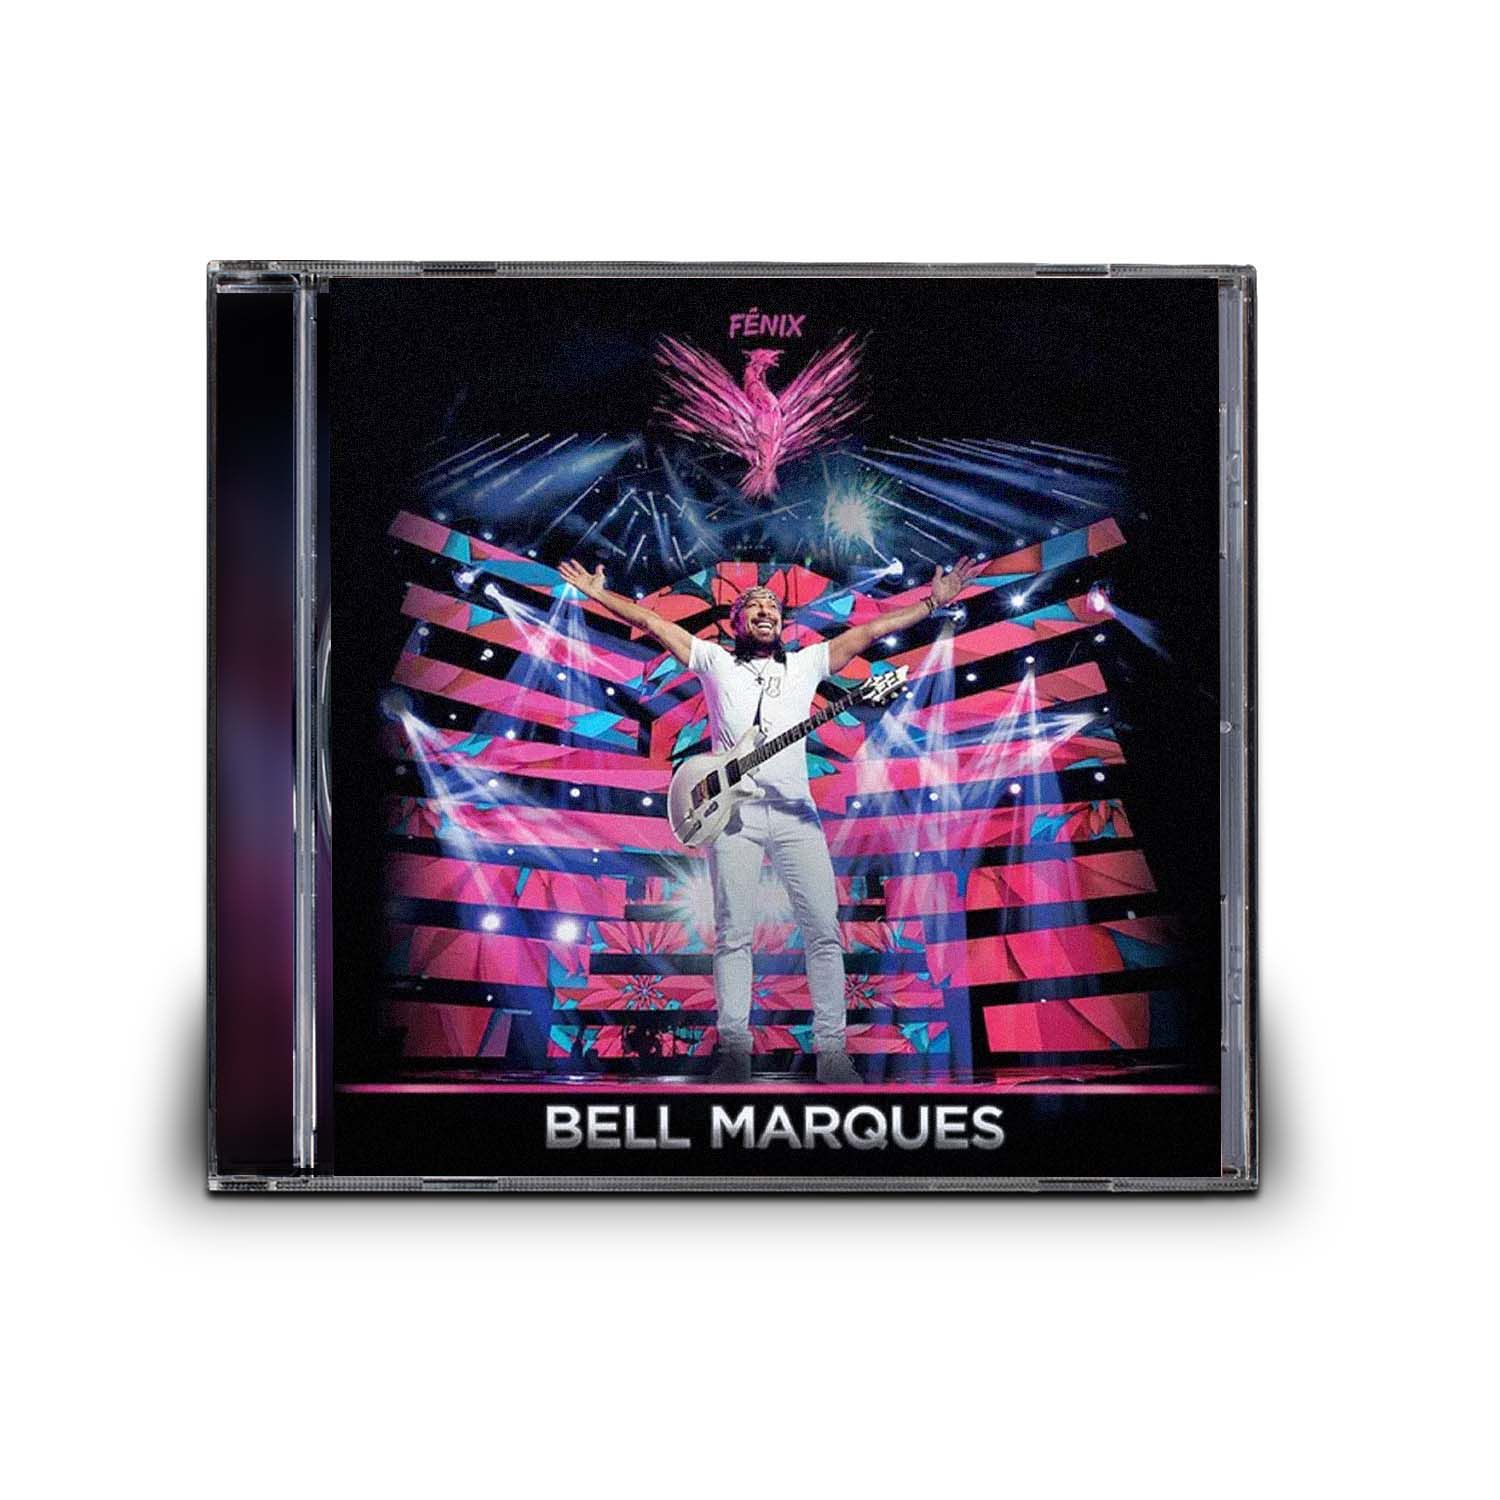 CD BELL MARQUES - FENIX